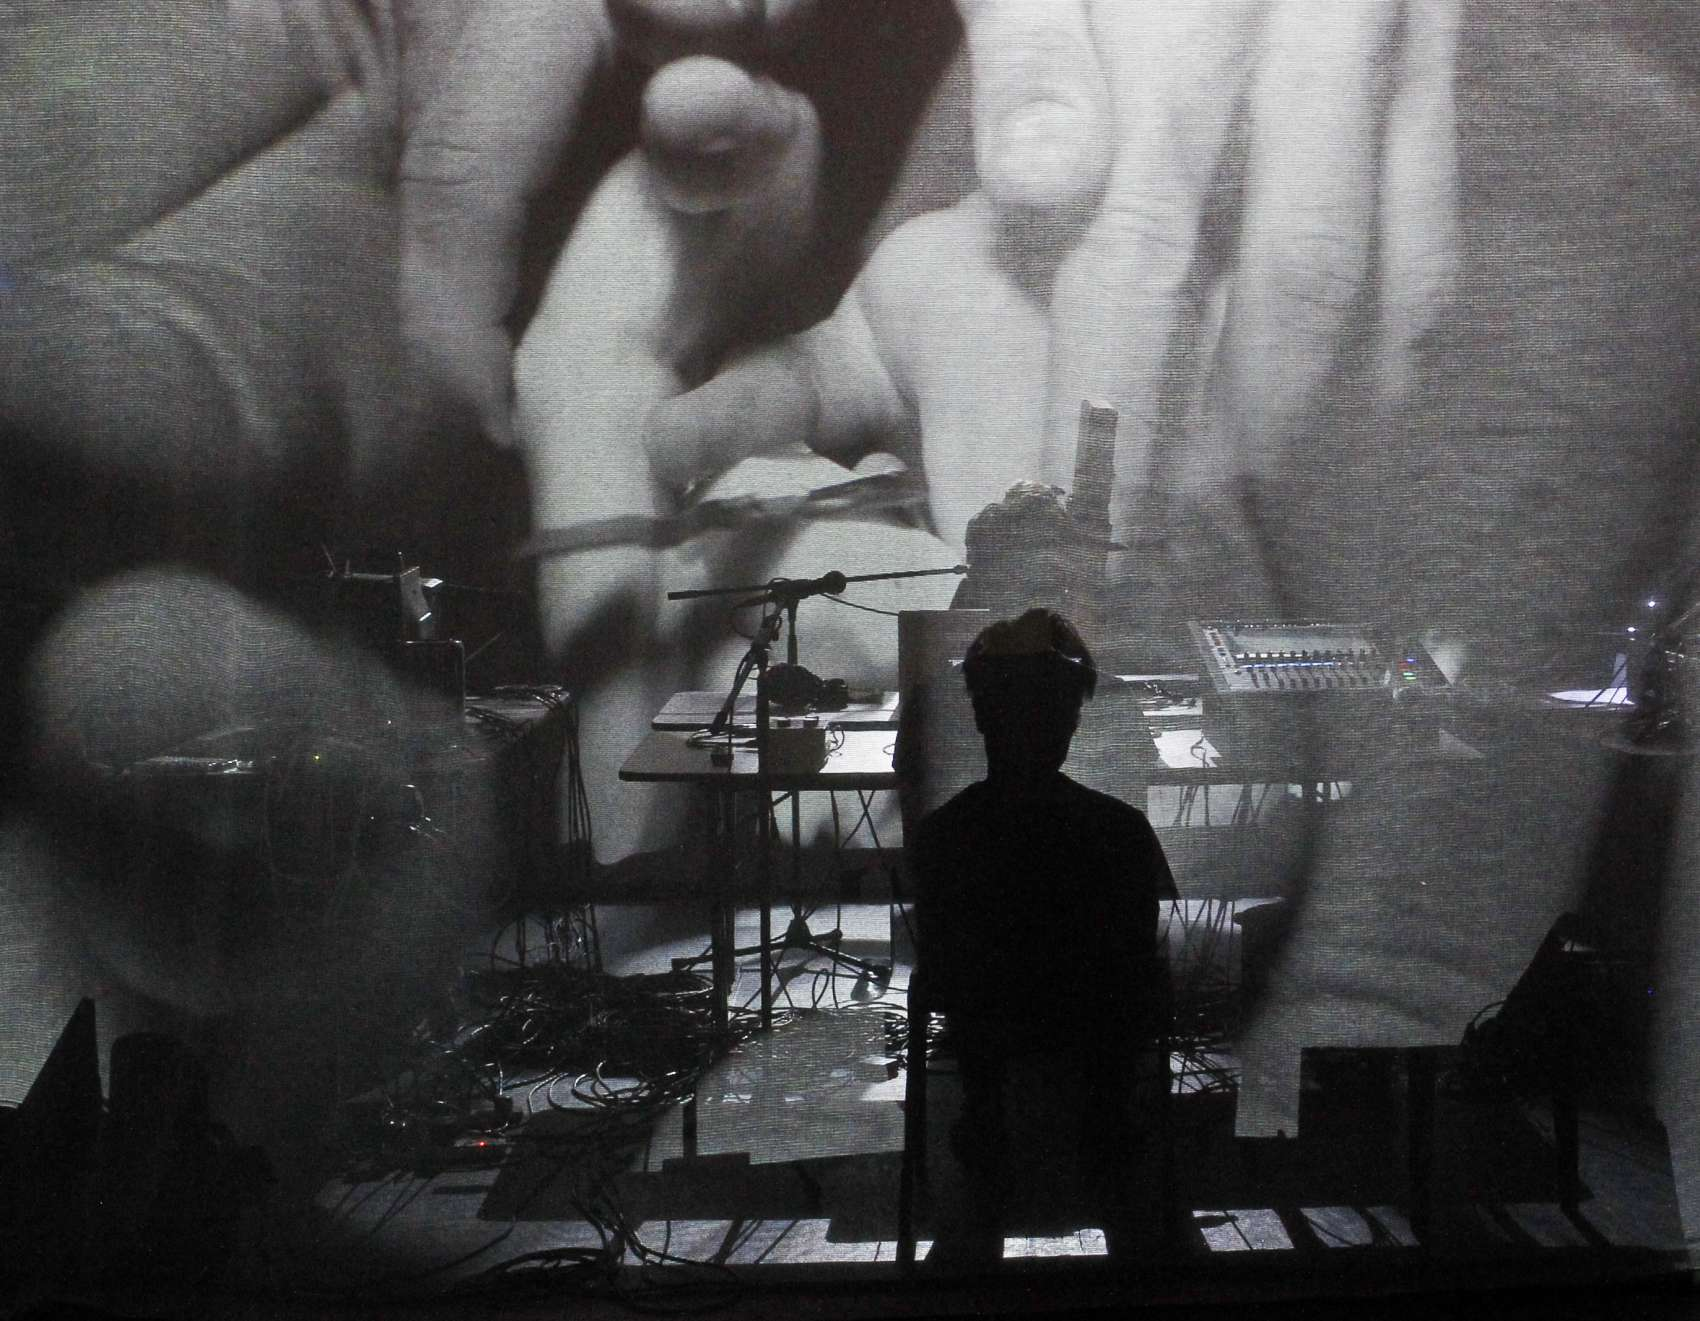 Image of a performer and equipment against a large screen projection of intertwined hands